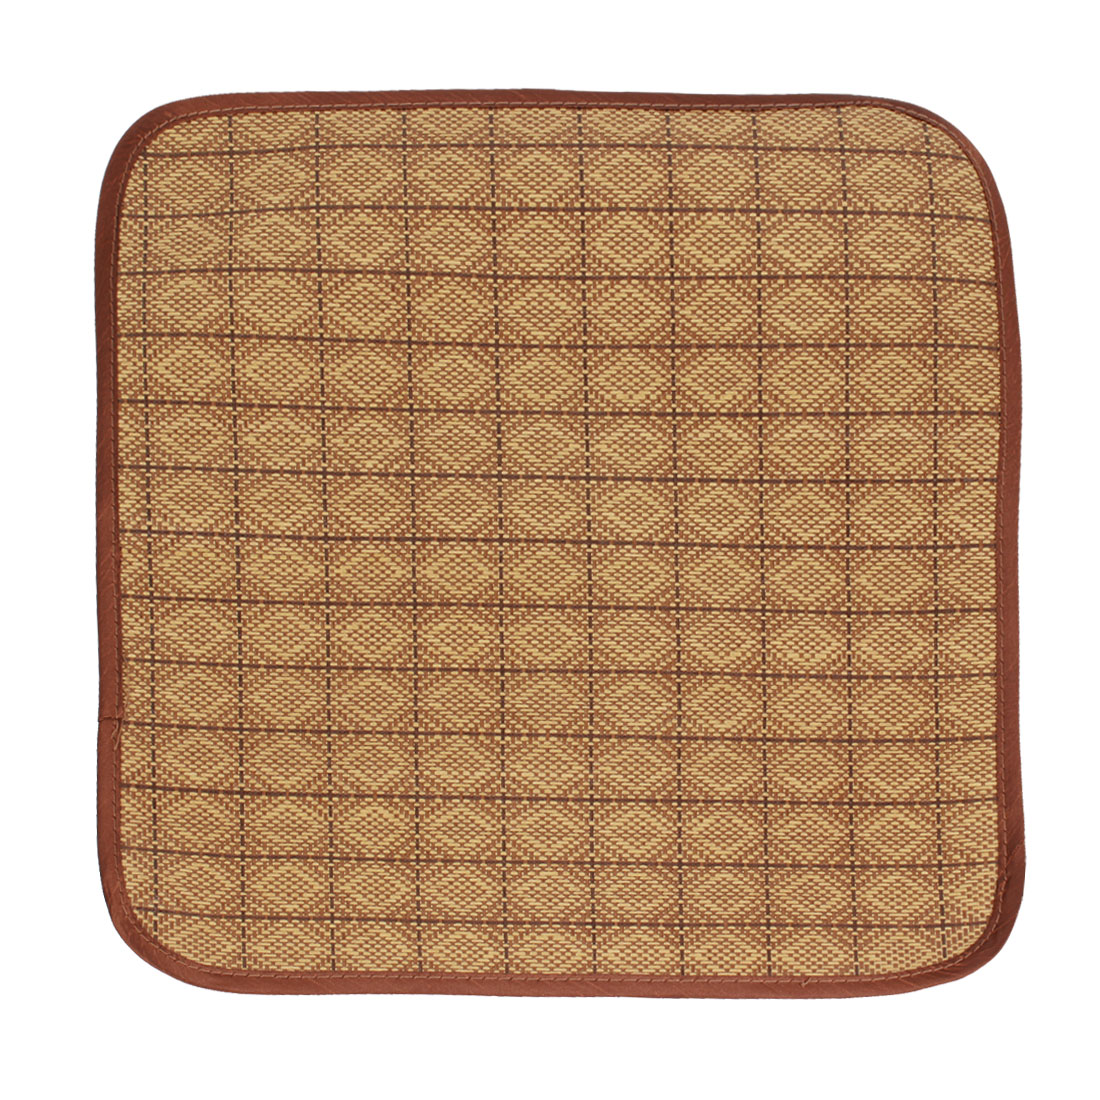 Cooling Summer Pet Dog Cat Square Mat Pad Cushion Brown Beige 40cm x 40cm